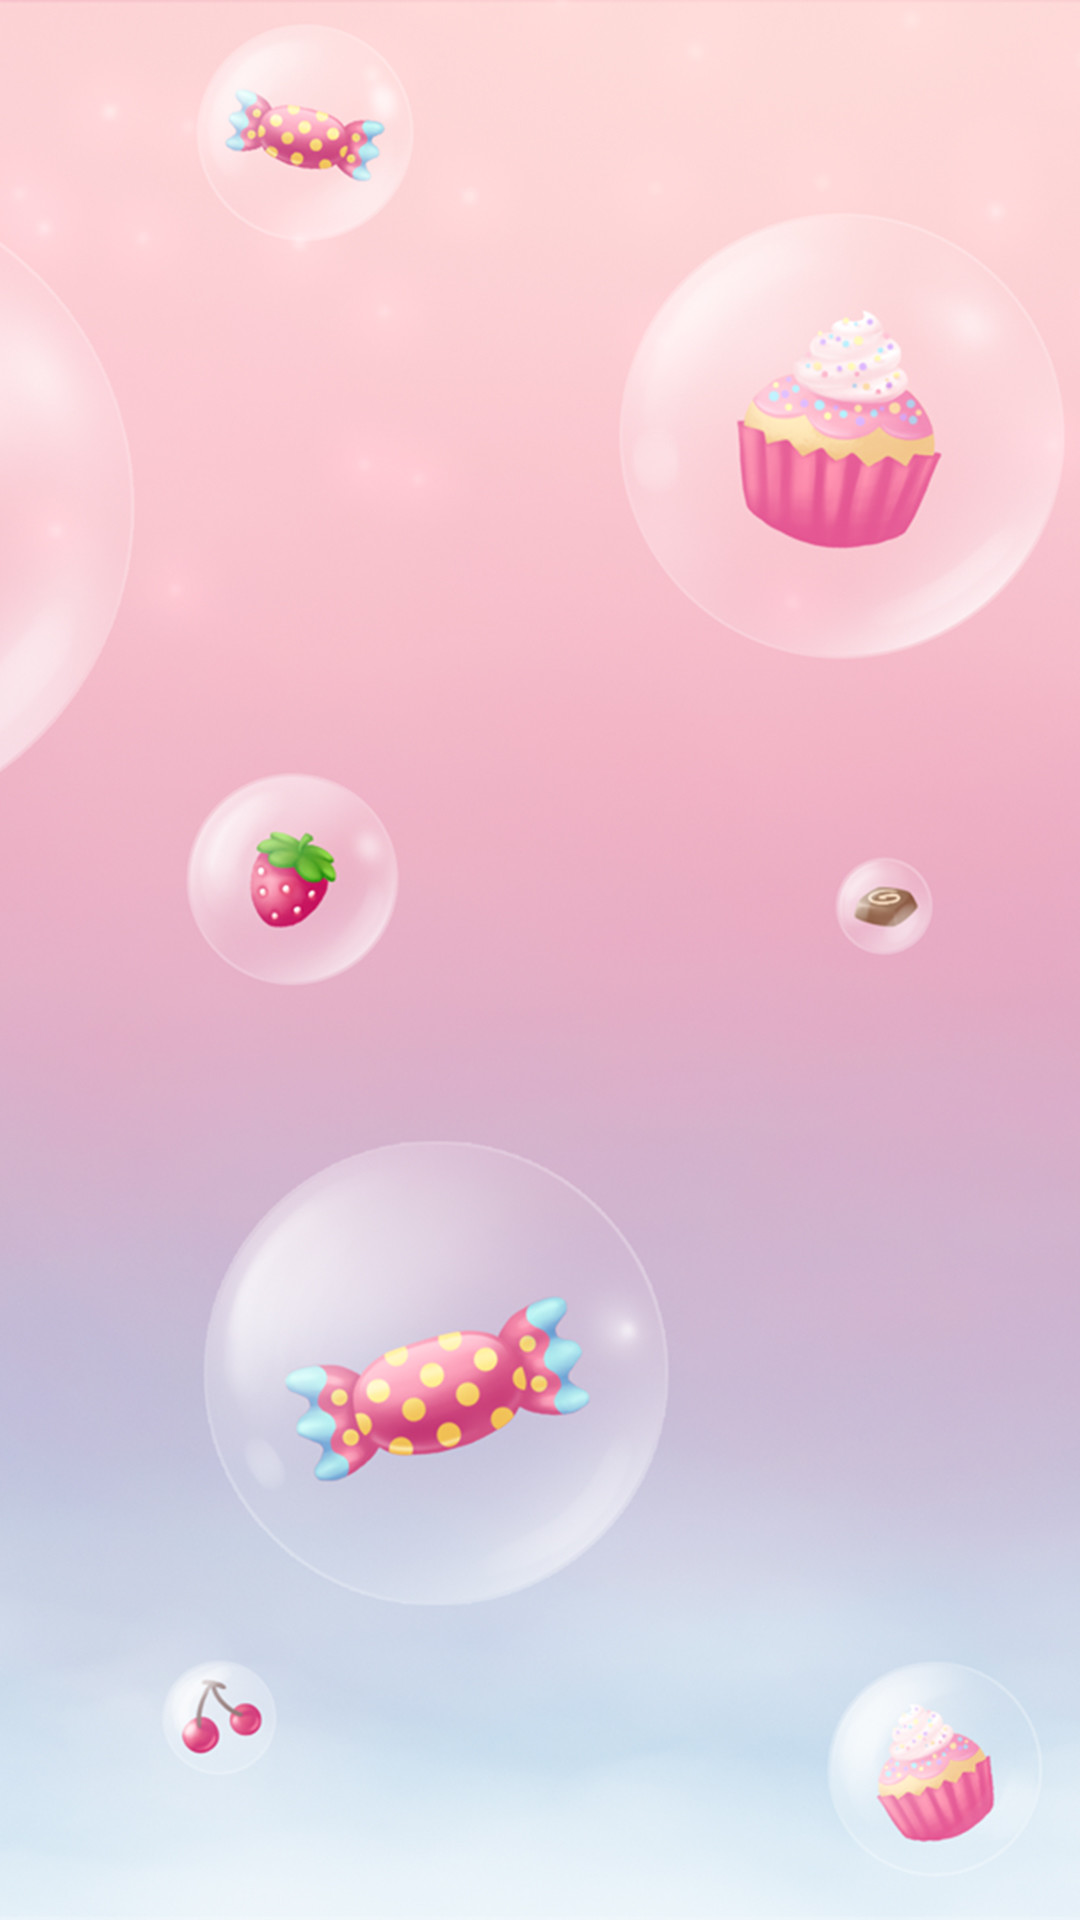 Pink cute wallpaper 69 images 1080x1920 girlish hello kitty pink cute japan cat voltagebd Choice Image